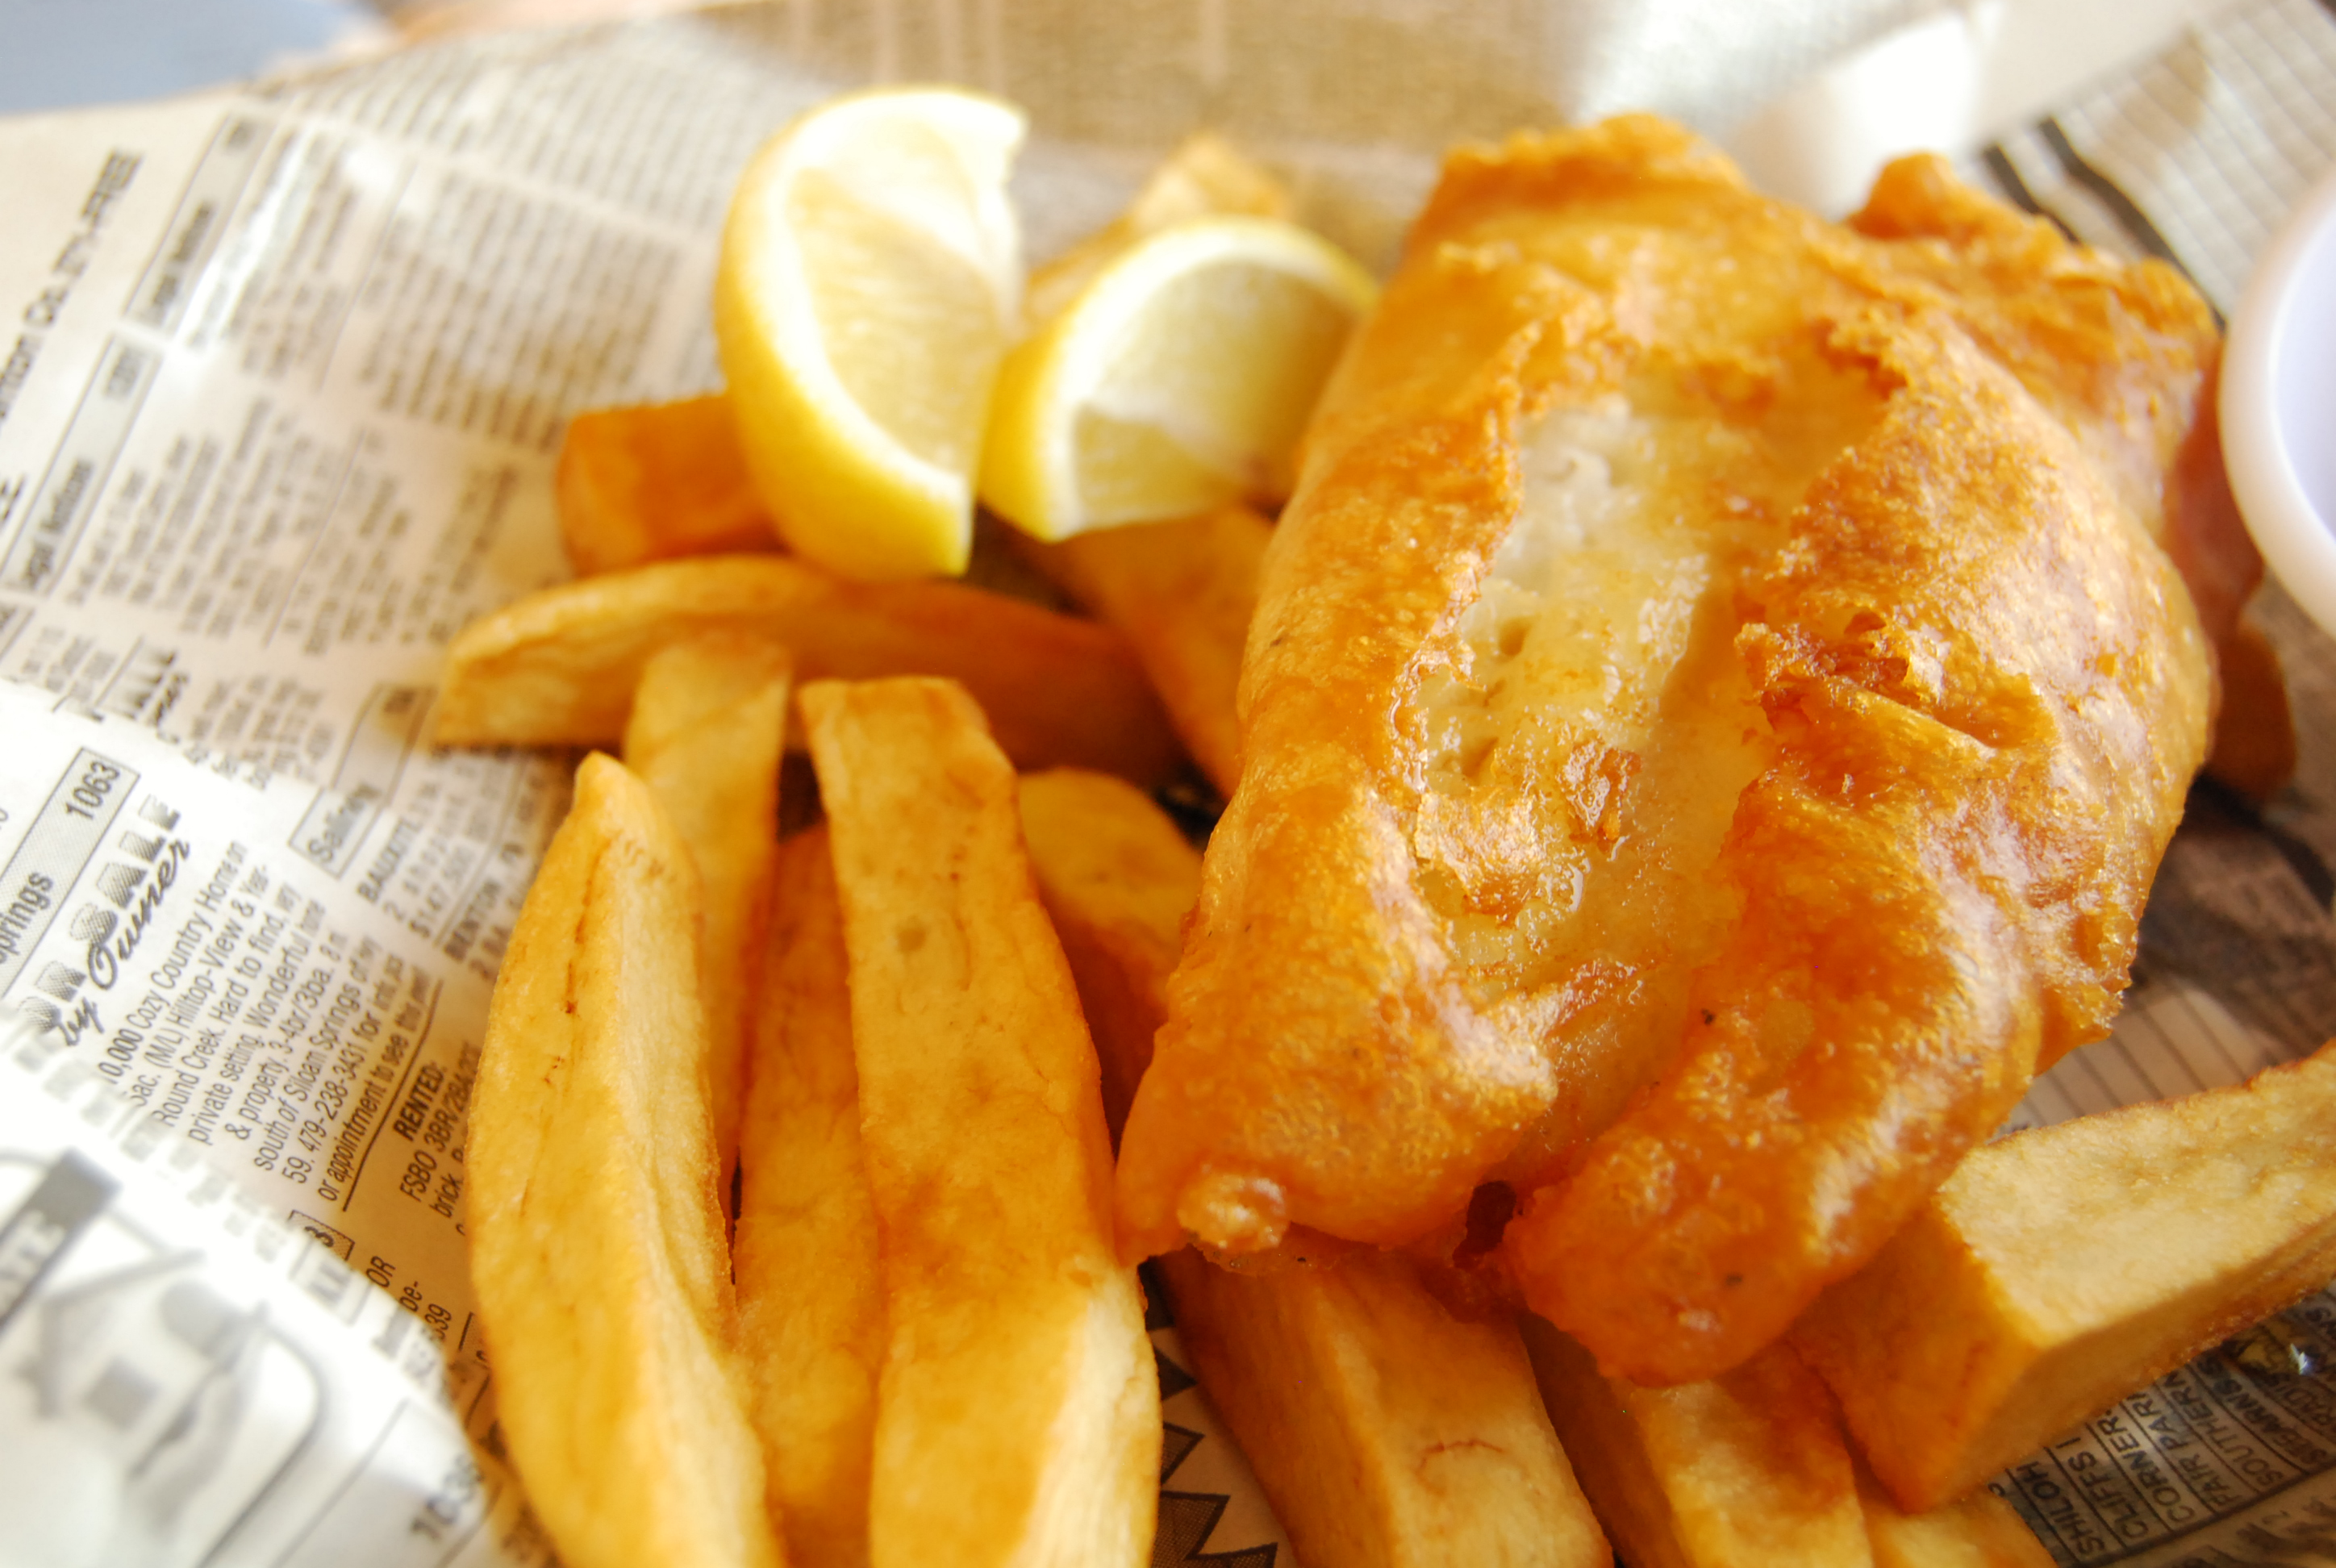 fish-chip-takeaway-food-business-turnover-of-850k-2